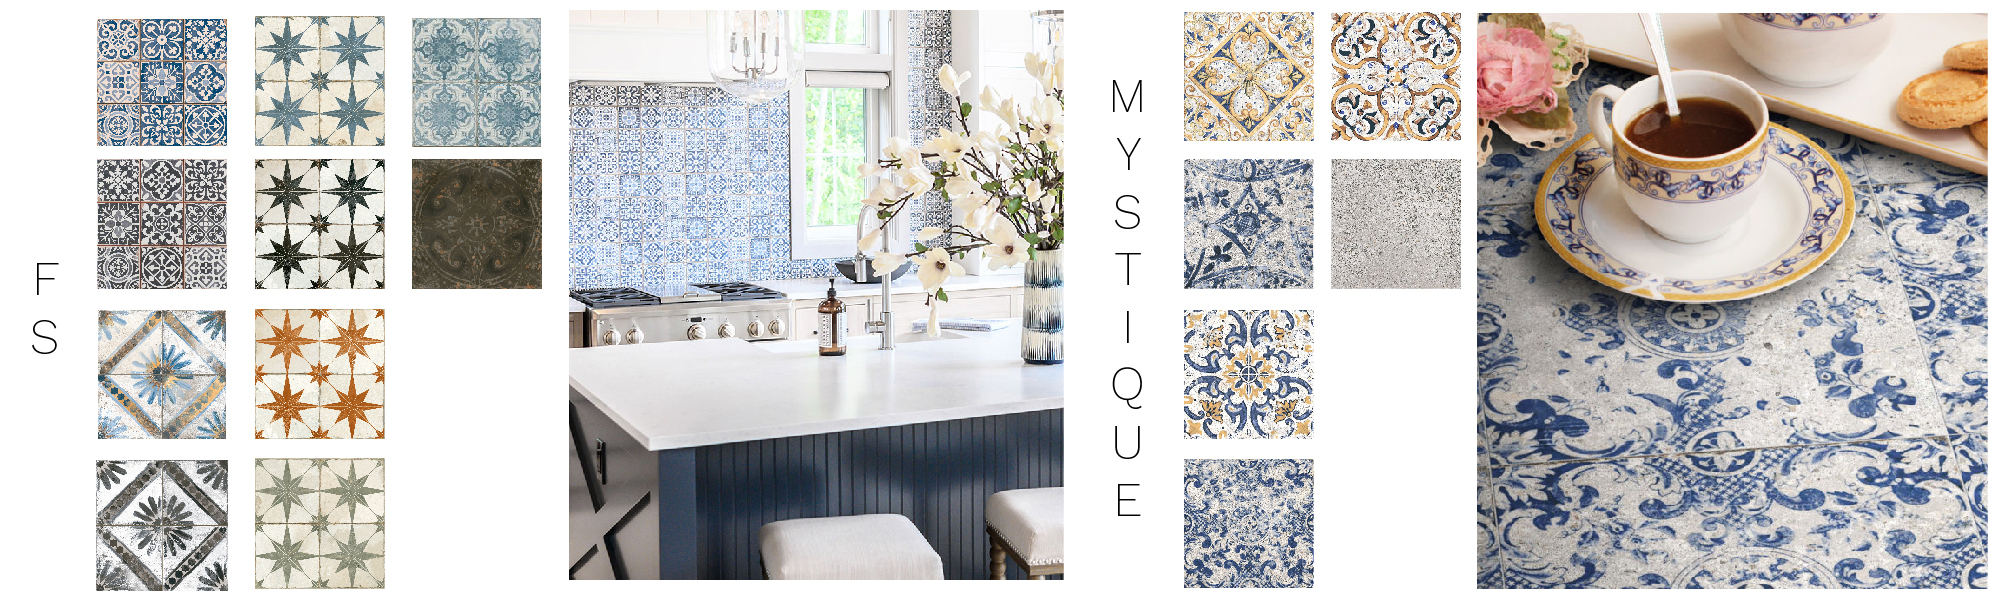 tanya-collins-national-tile-day-fs-mystique-01